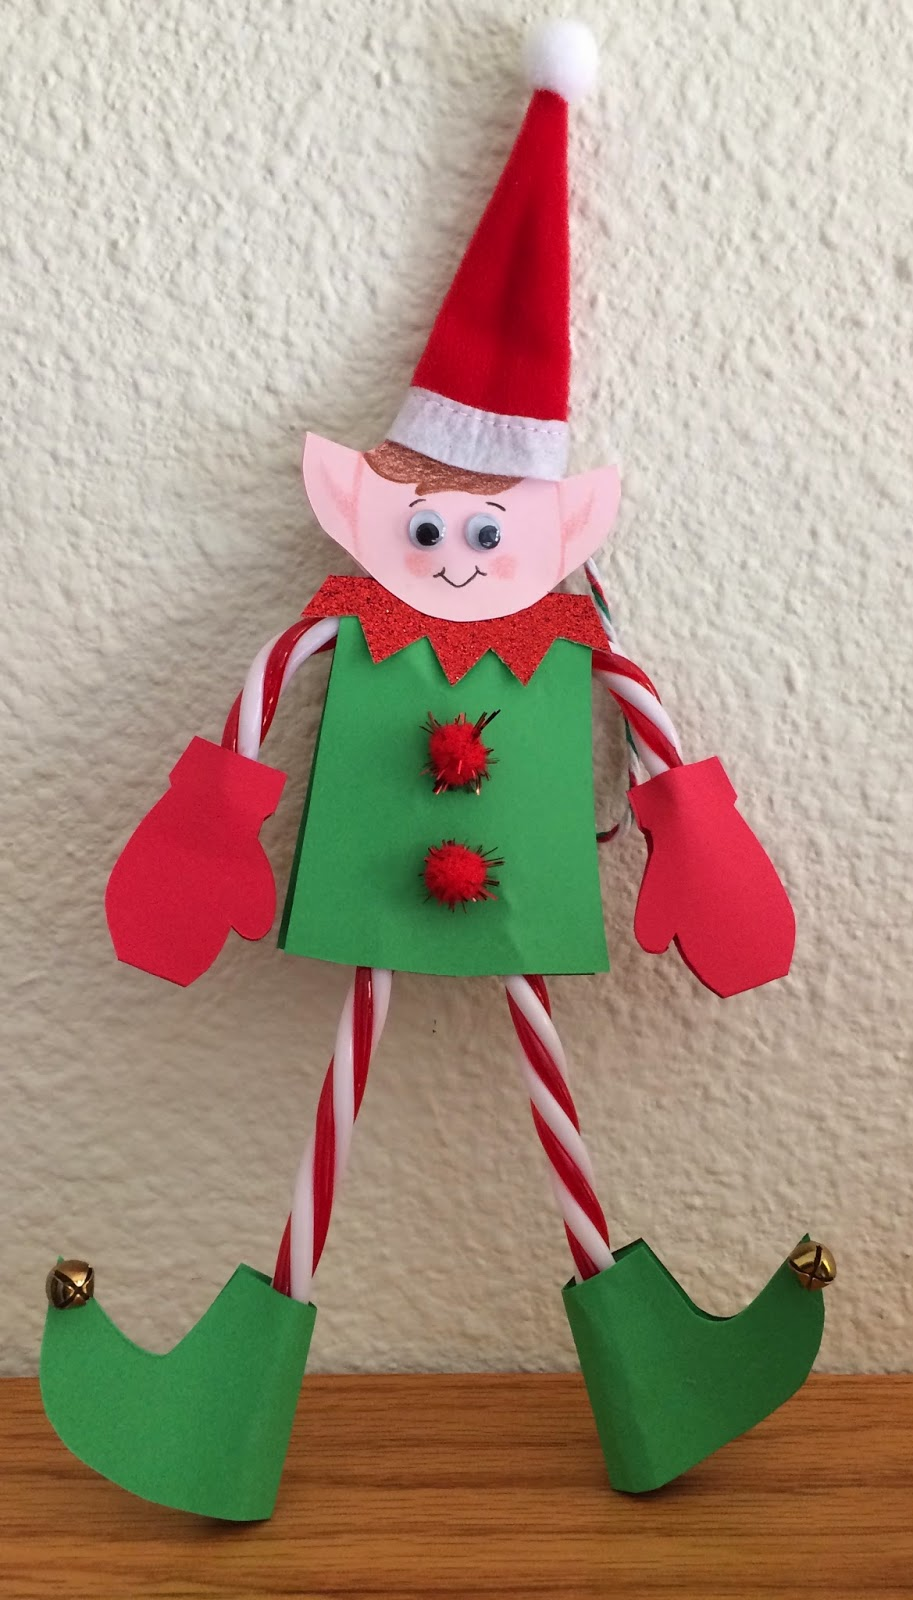 Candy Cane Elf Ornament Fun Family Crafts